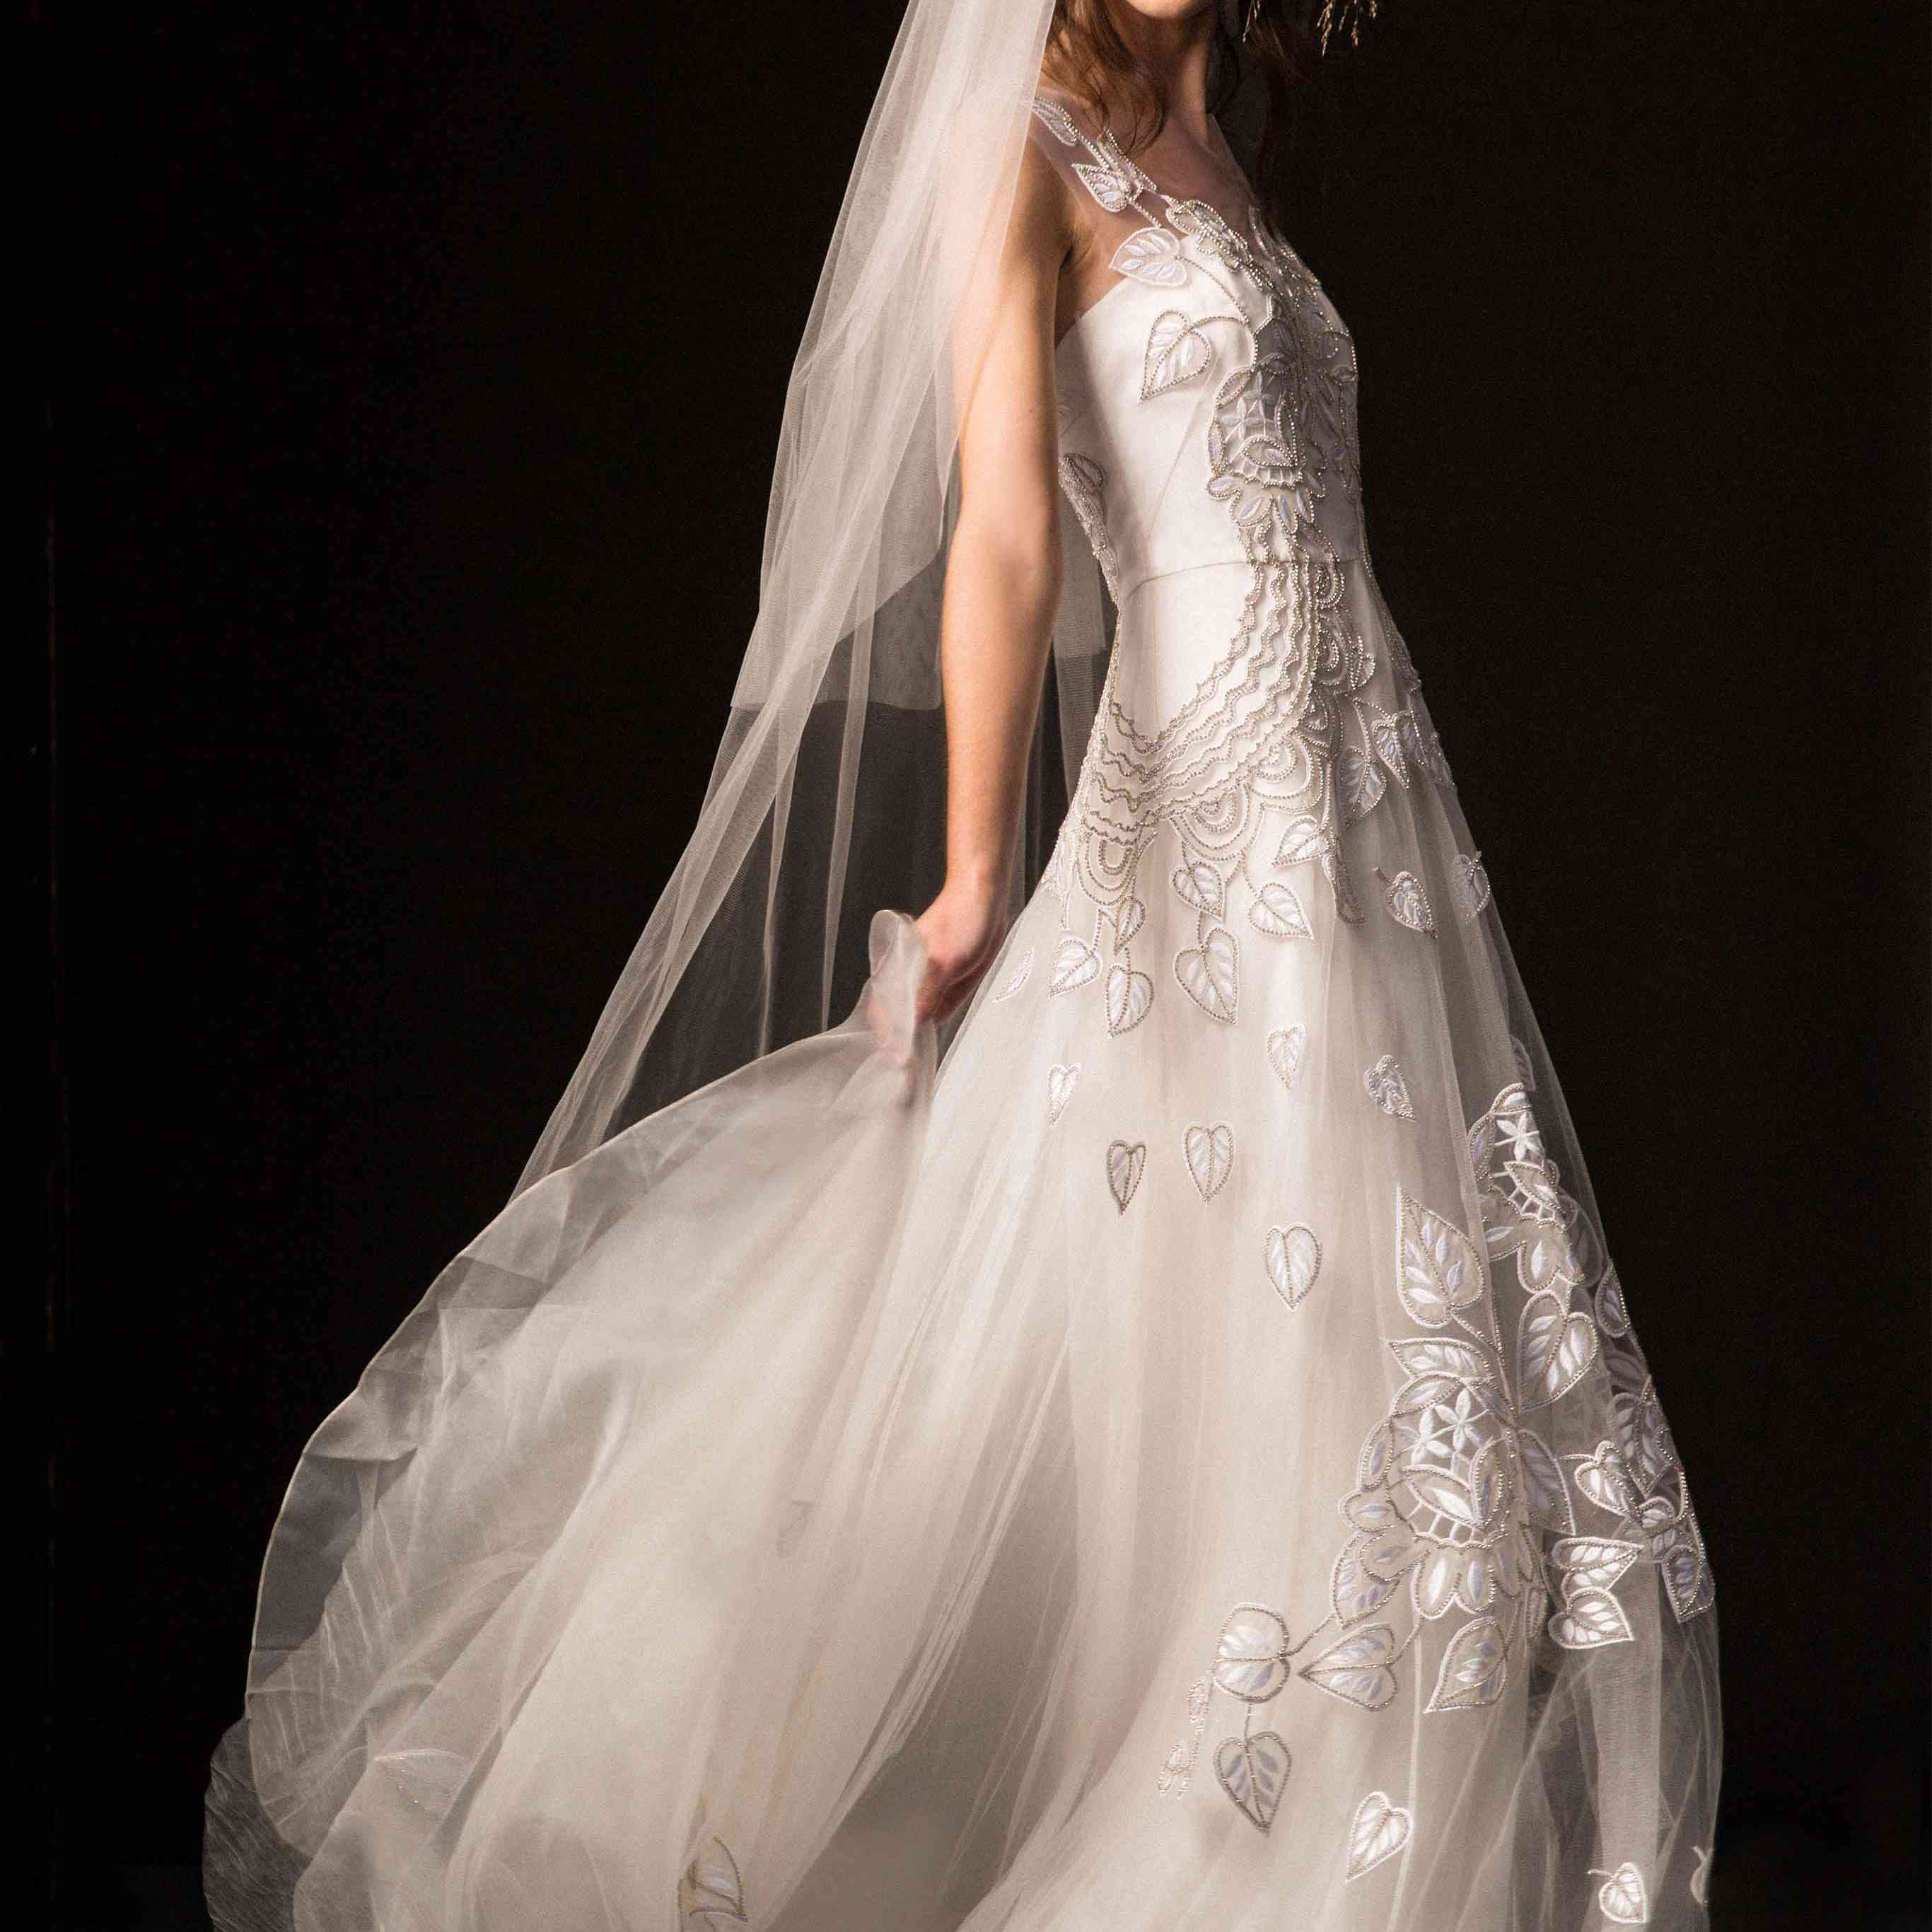 Model in floral embroidered tulle wedding gown